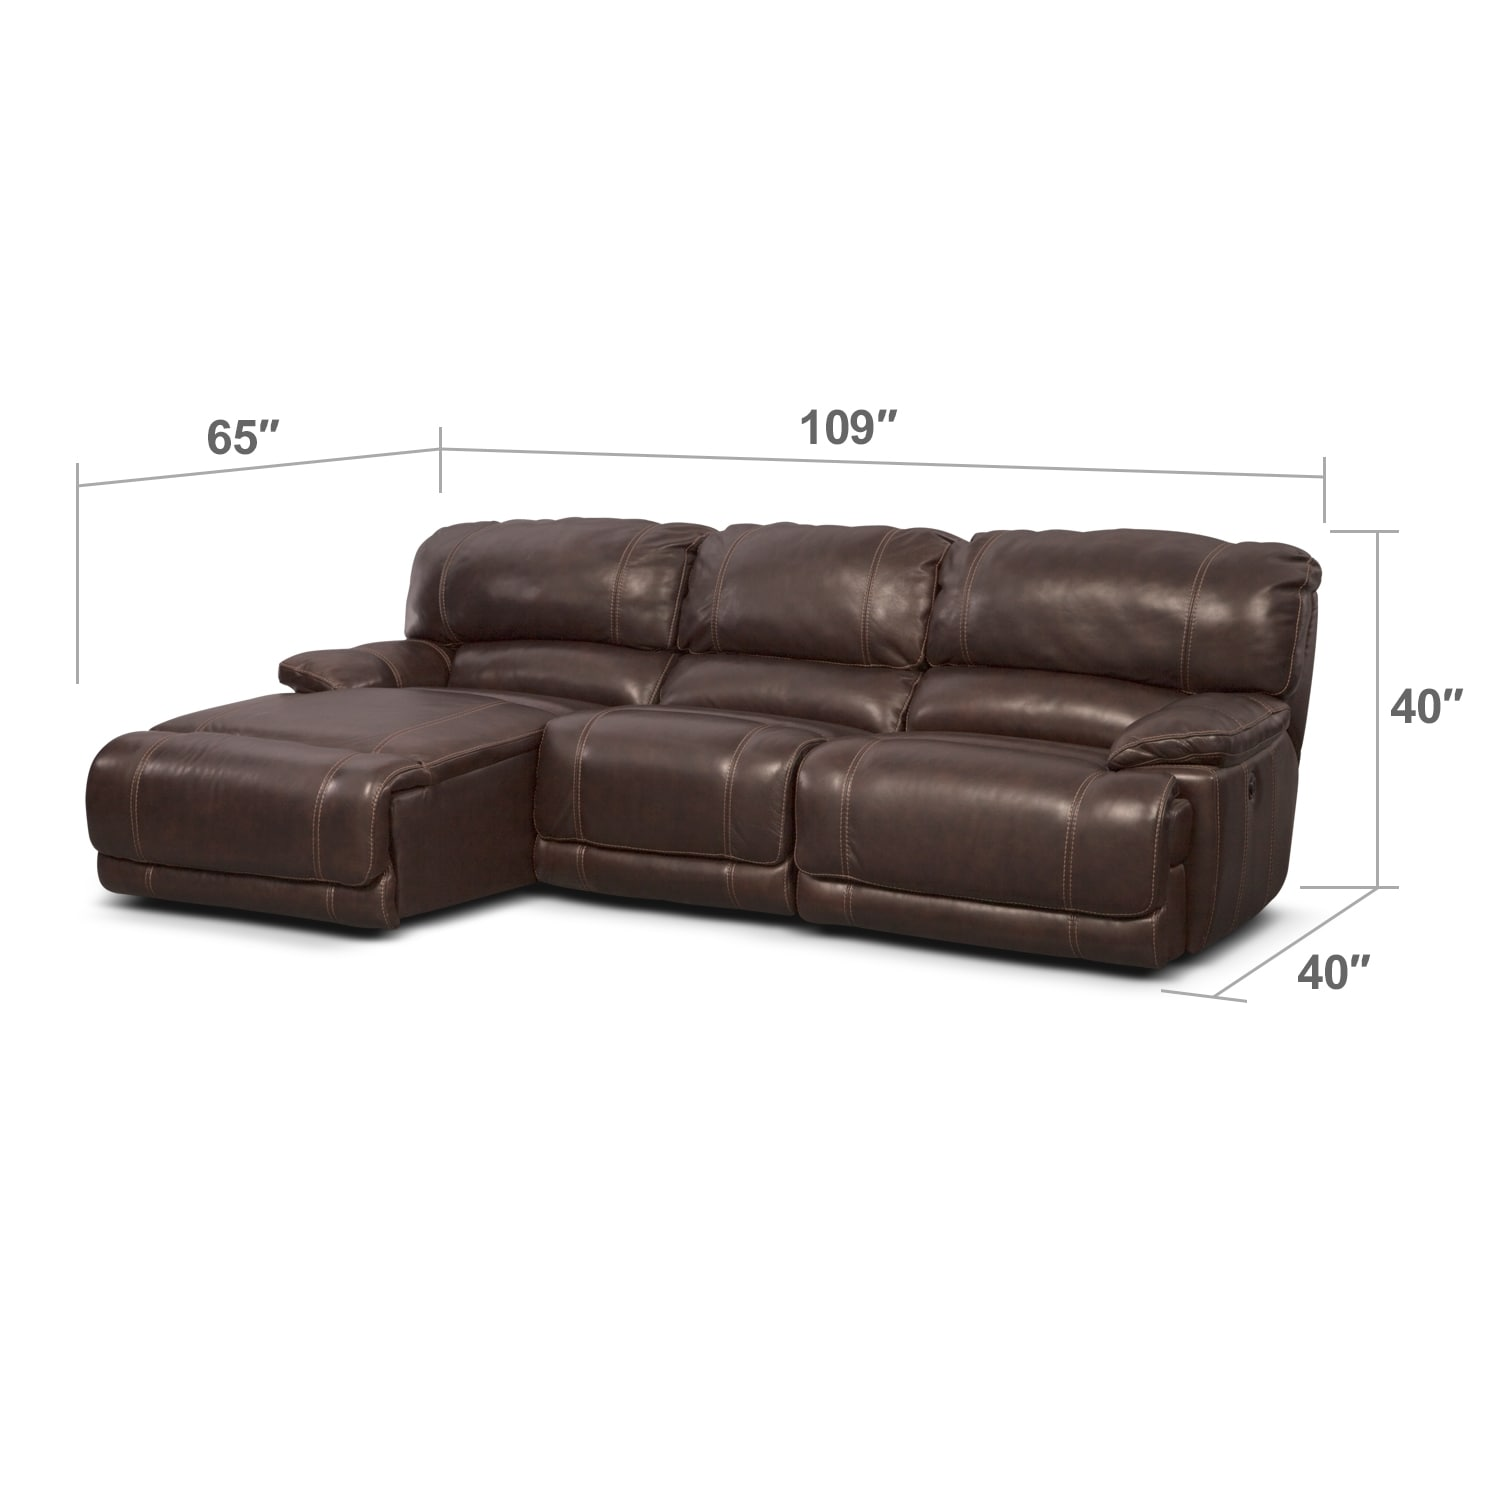 Living Room Furniture - Clinton Brown 3 Pc. Power Reclining Sectional (Reverse)